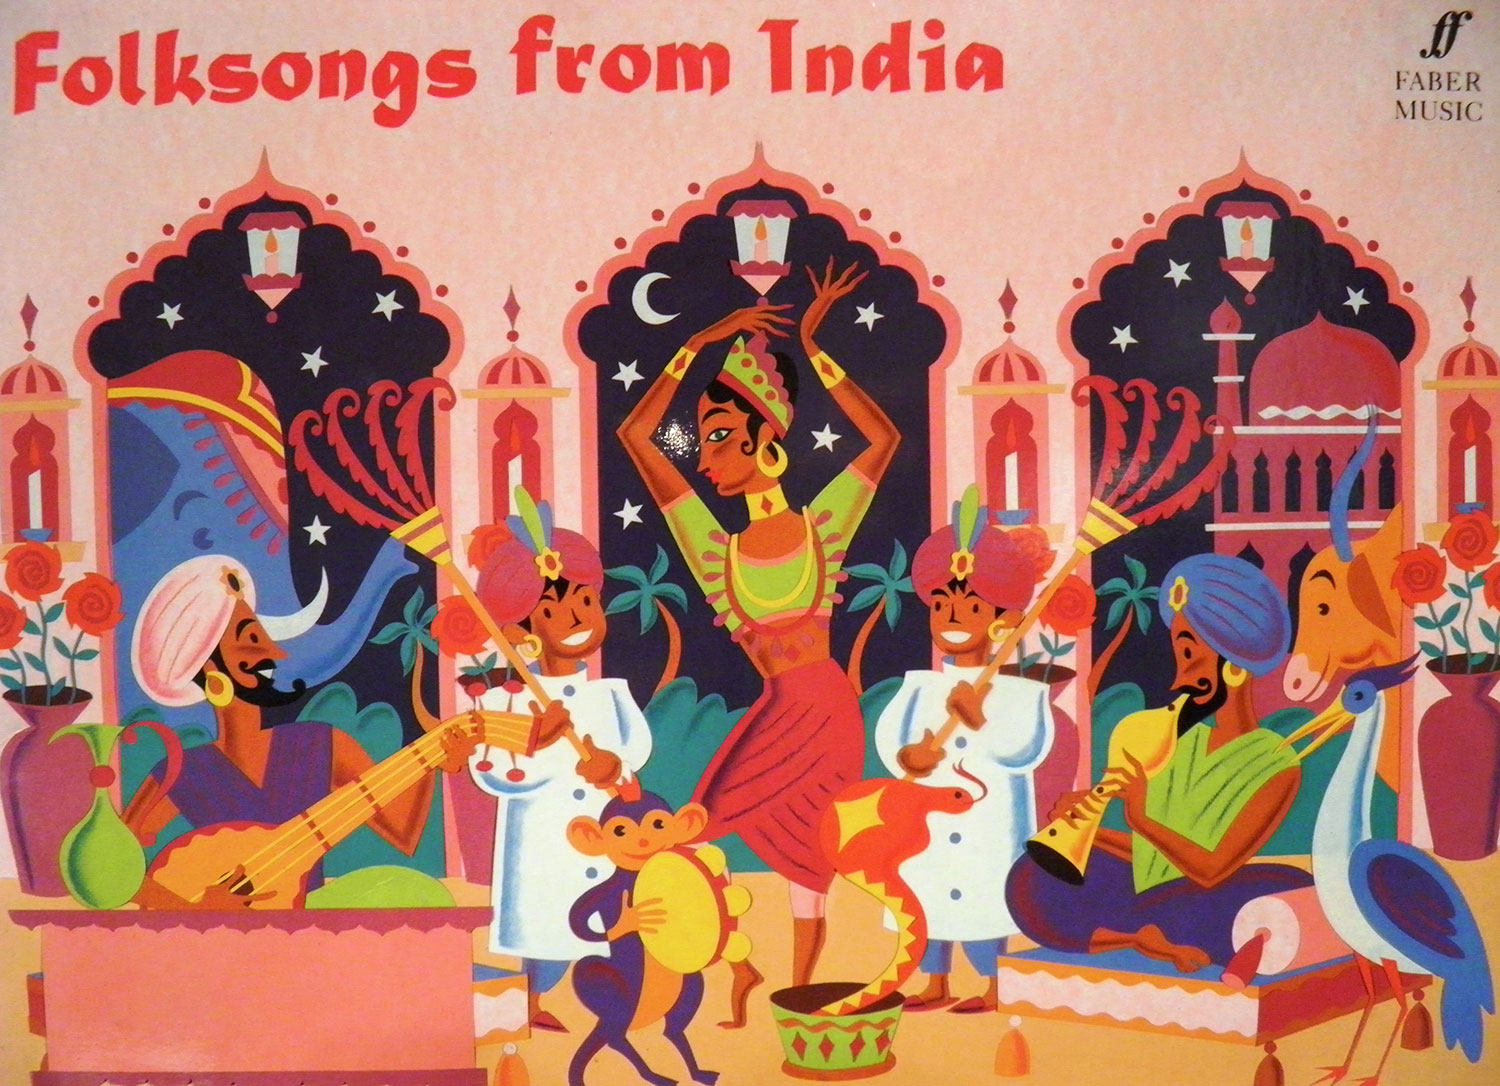 Folksongs from India